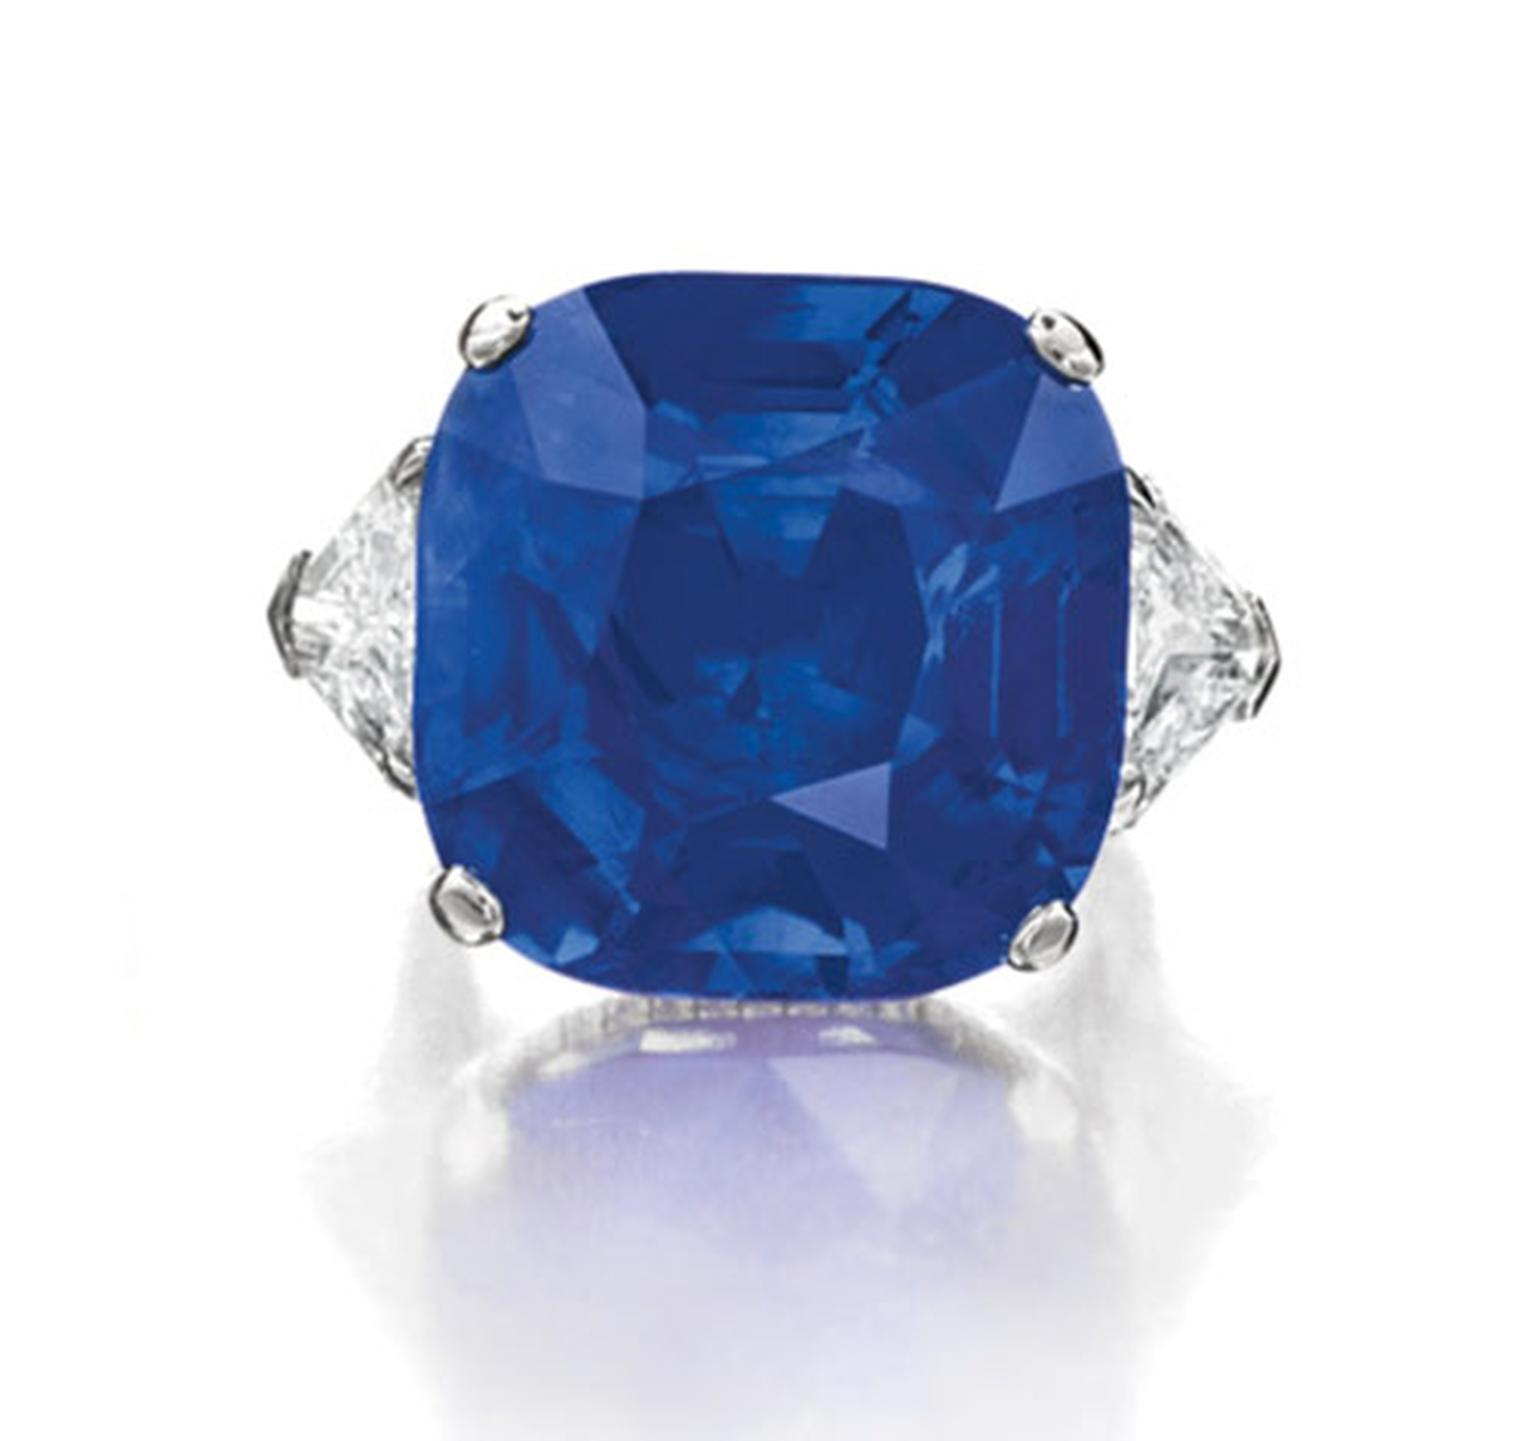 Christies-Cushion-Cut-Burmese-Sapphire-Diamond-Ring